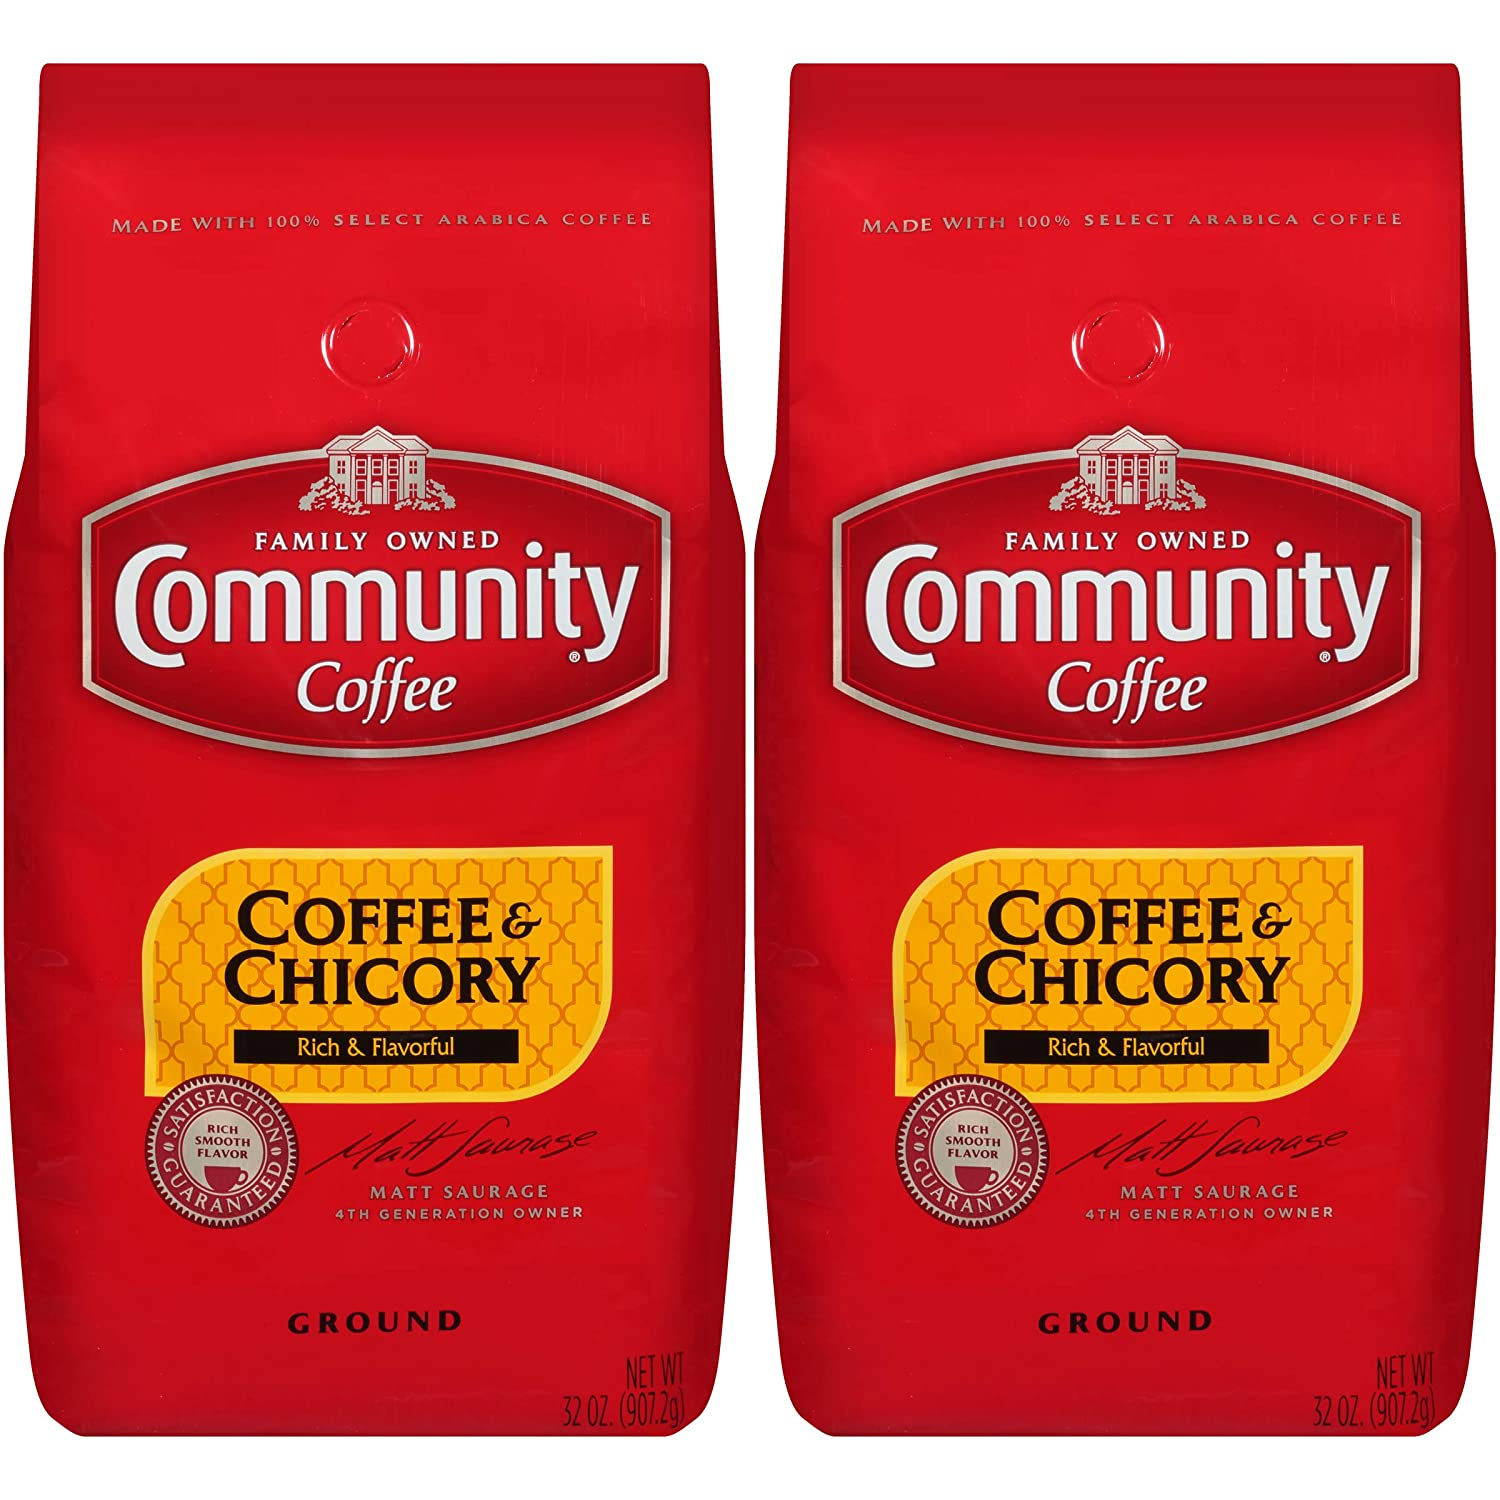 Community Coffee and Chicory Medium Dark Roast Premium Ground 32 Oz Bag (2 Pack), Full Body Rich Flavorful Taste, 100% Select Arabica Beans